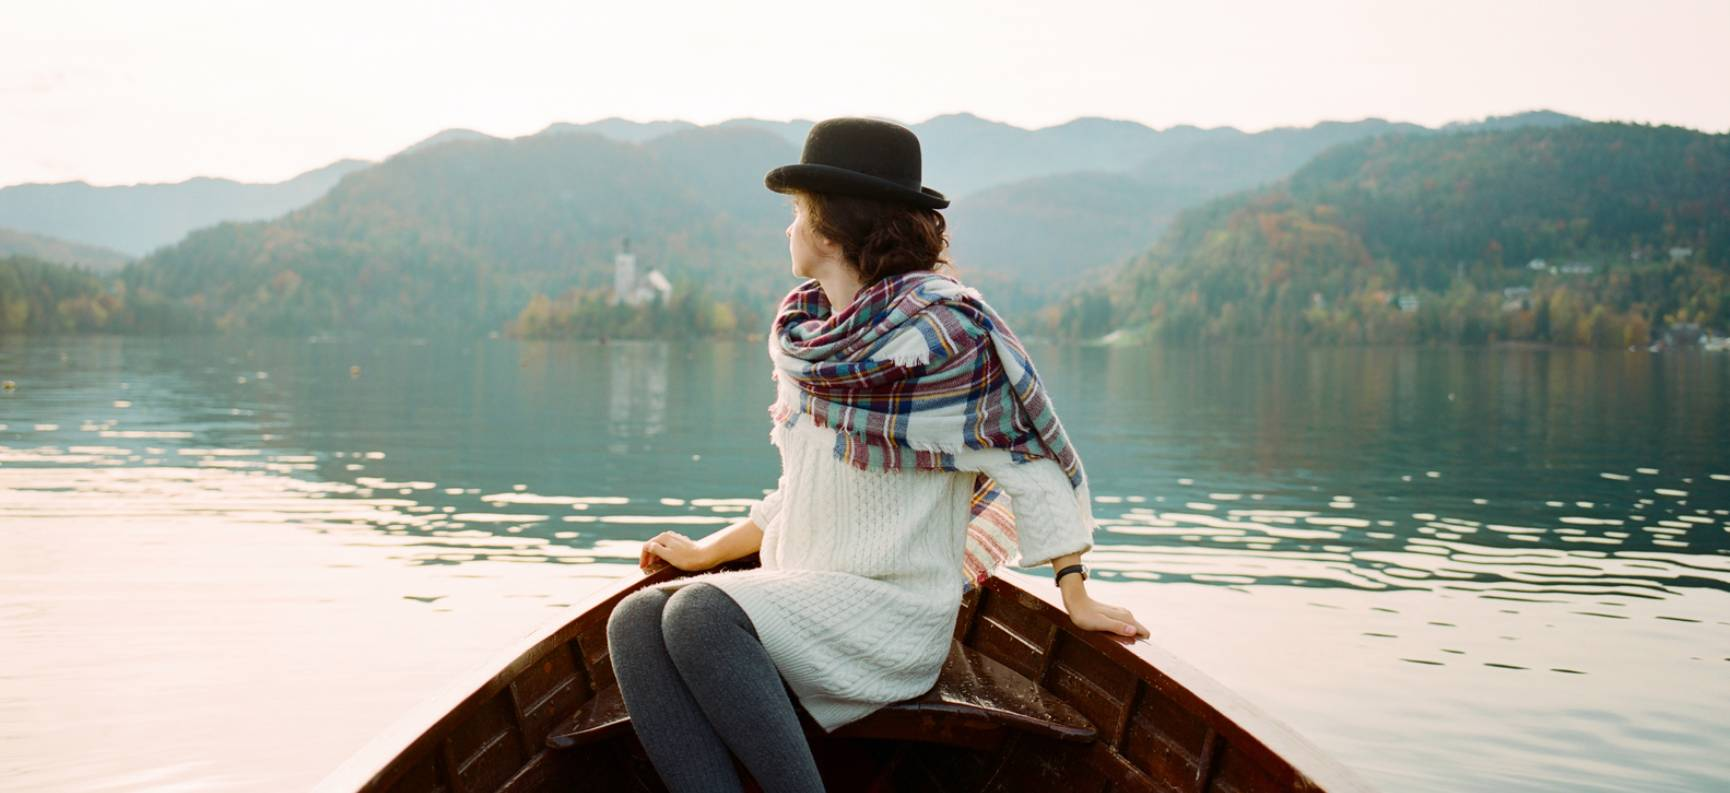 Watching the Mother Ship Sail: Regret (and Relief) of Not Becoming a Parent